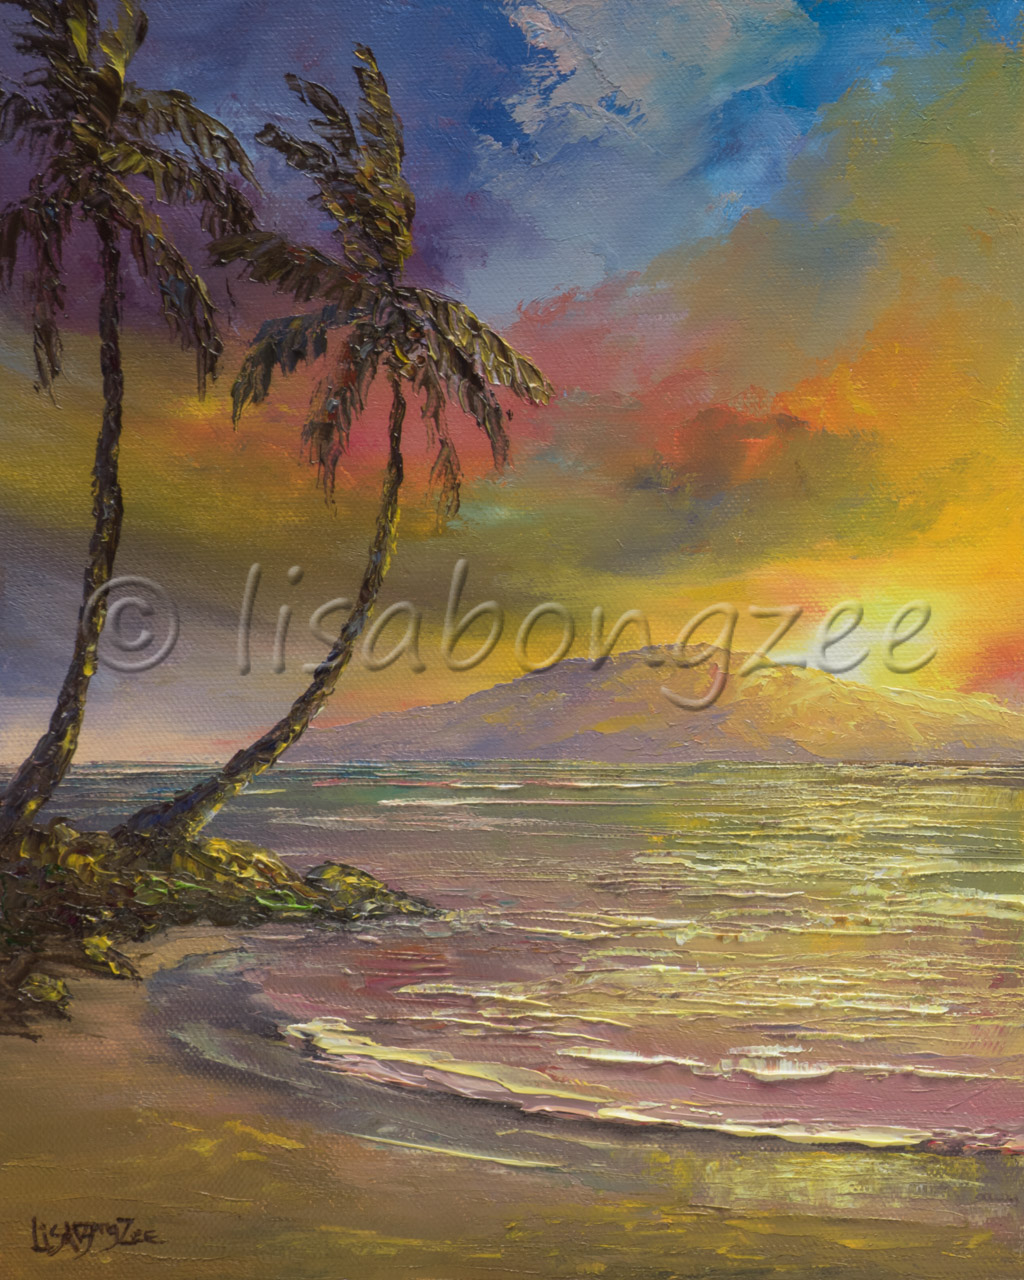 Original oil painting of a sunset with Lanai island in the background and two palm trees next to the ocean